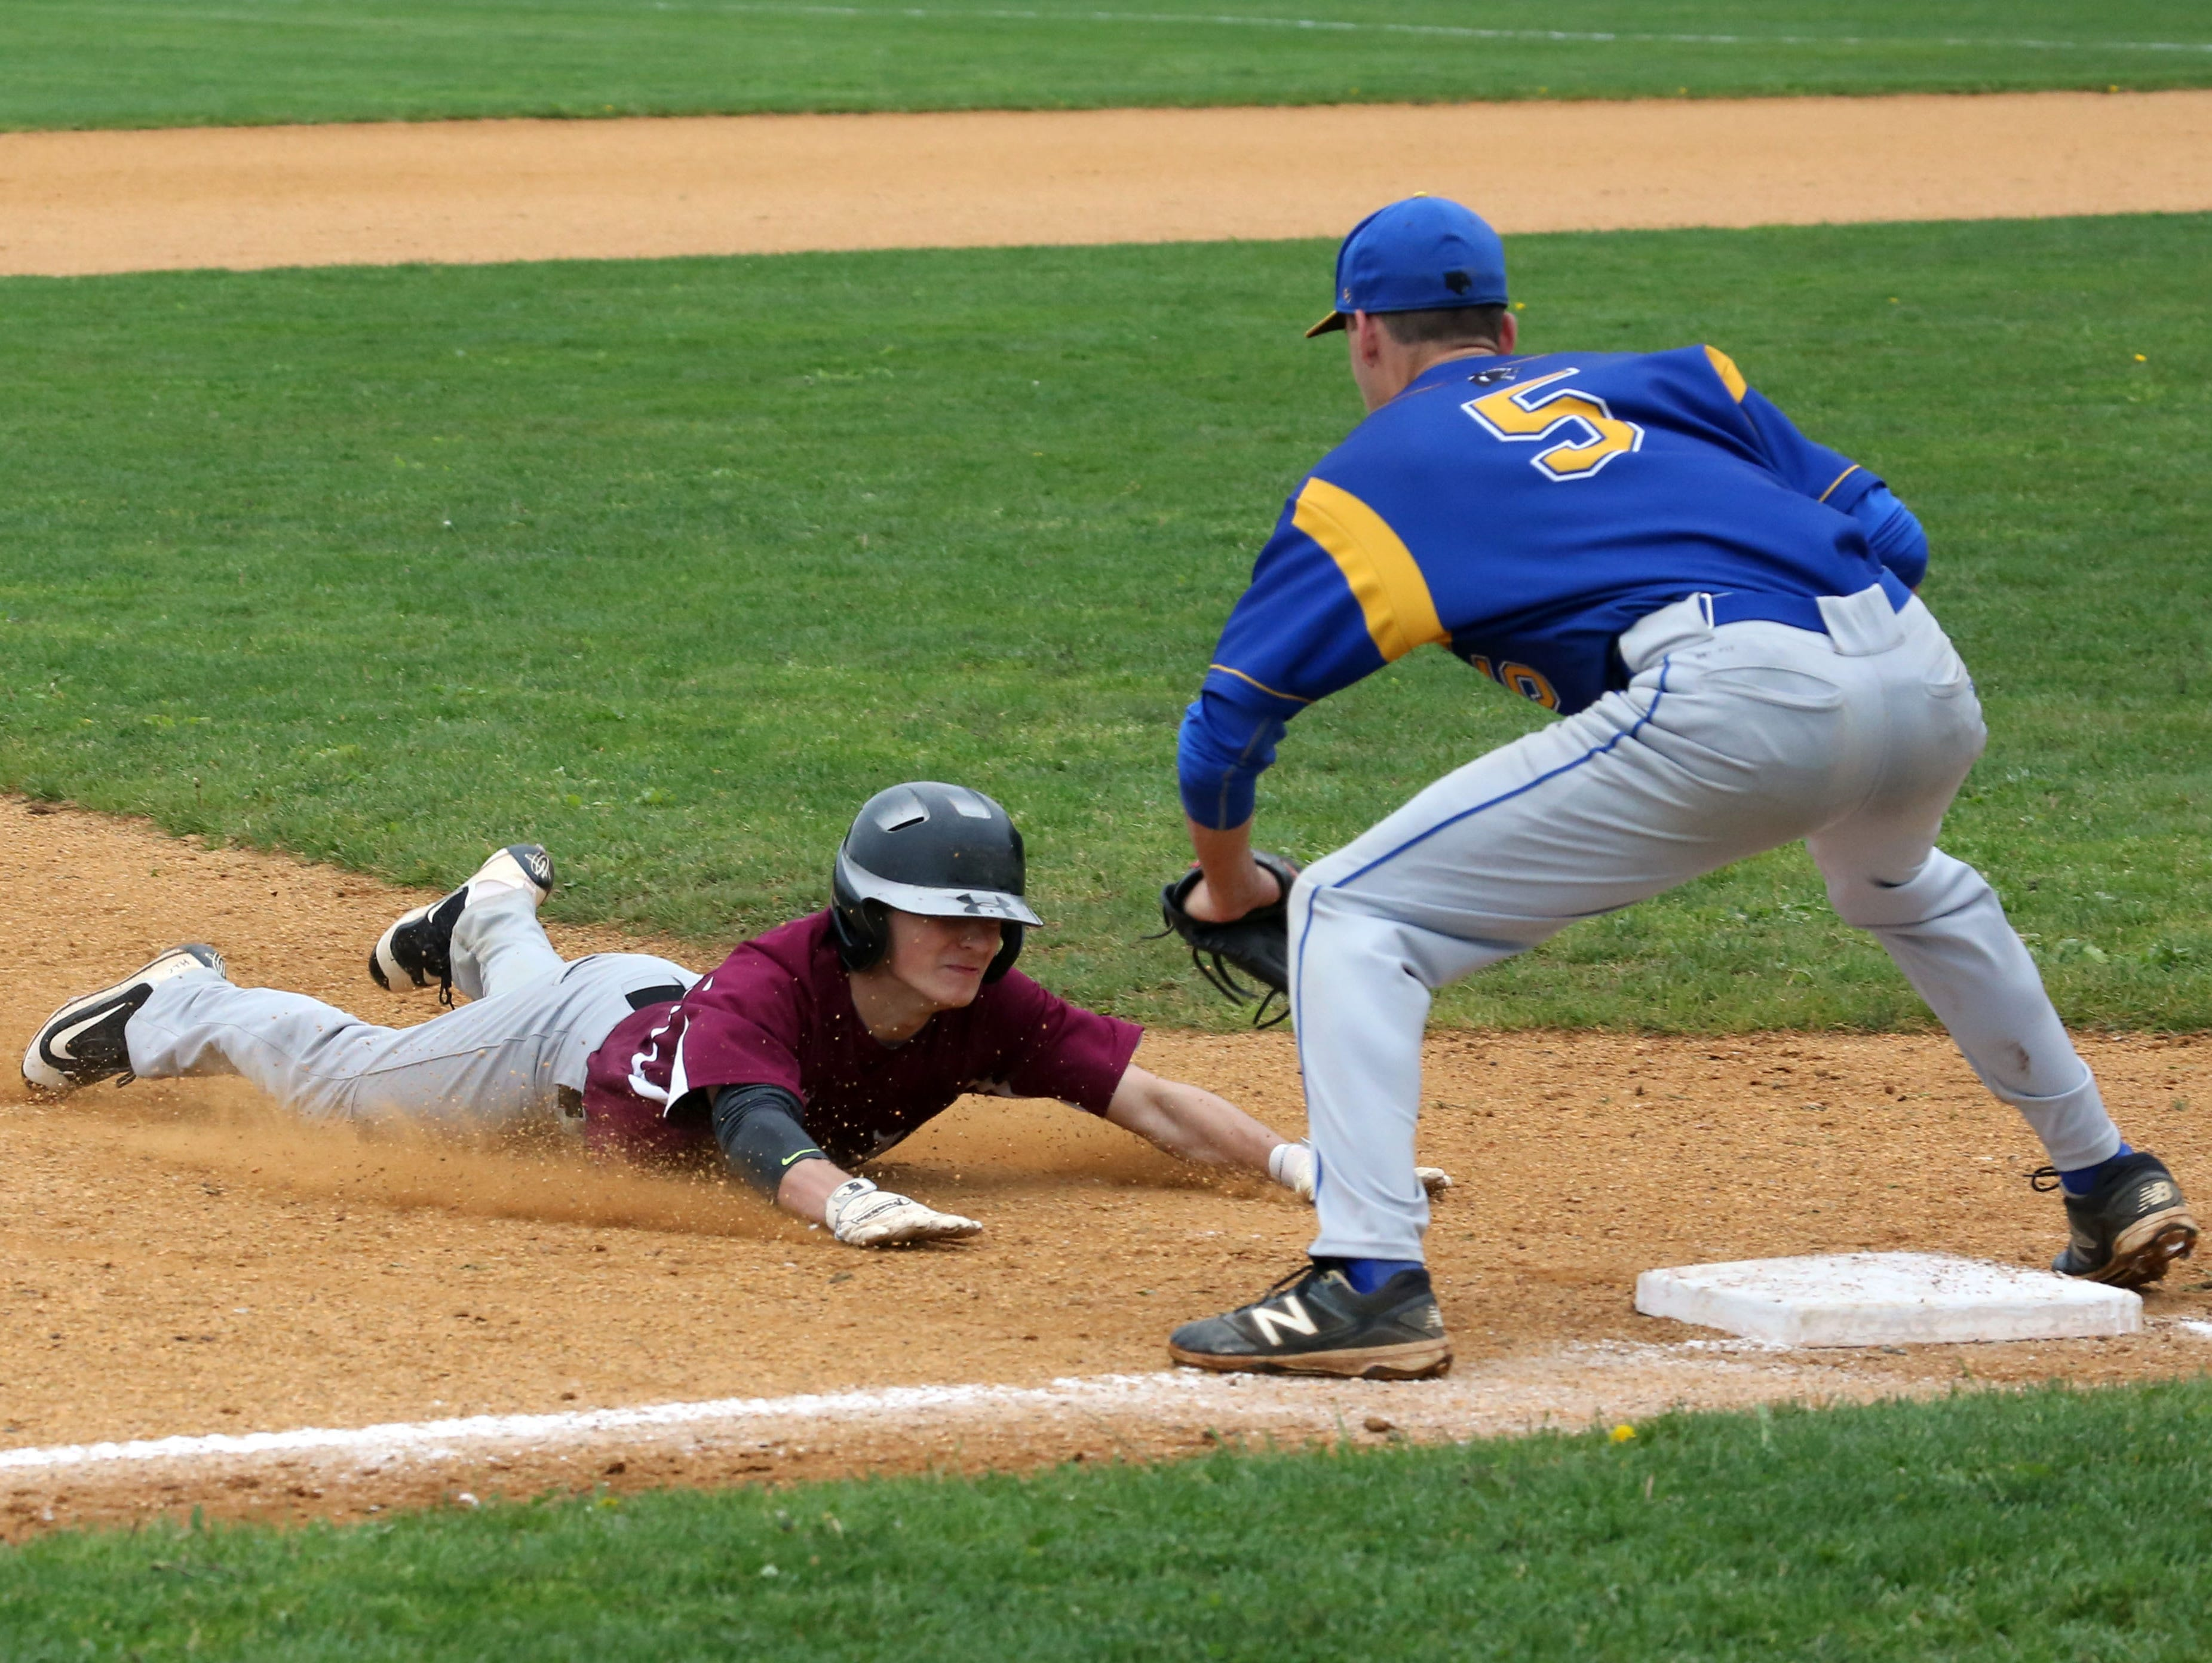 Albertus Magnus' Joe Ottaviano is out at third base as Ardsley's Peter Knights waits for him during their Class B game at Ardsley High School, May 21, 2016.